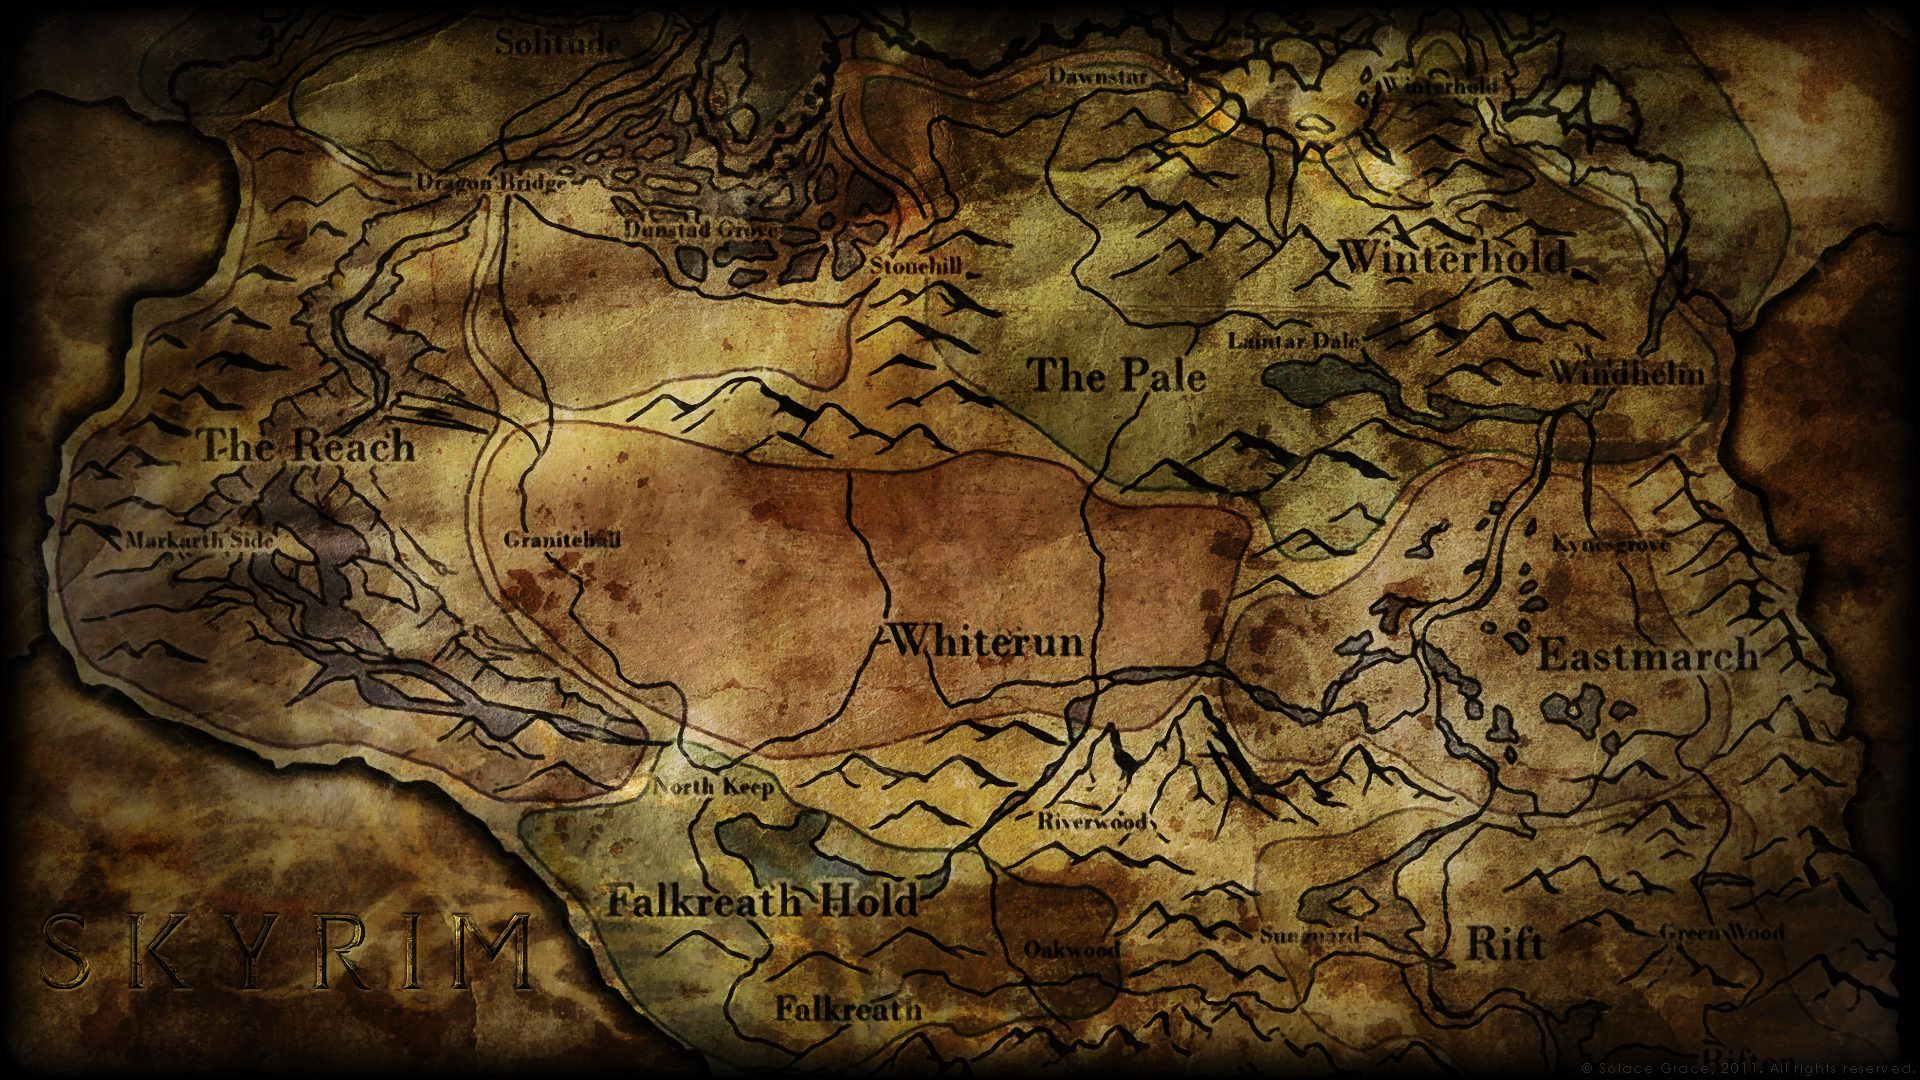 Skyrim Map   Over 25 Different Maps of Skyrim to Map Out Your Journey 1920x1080